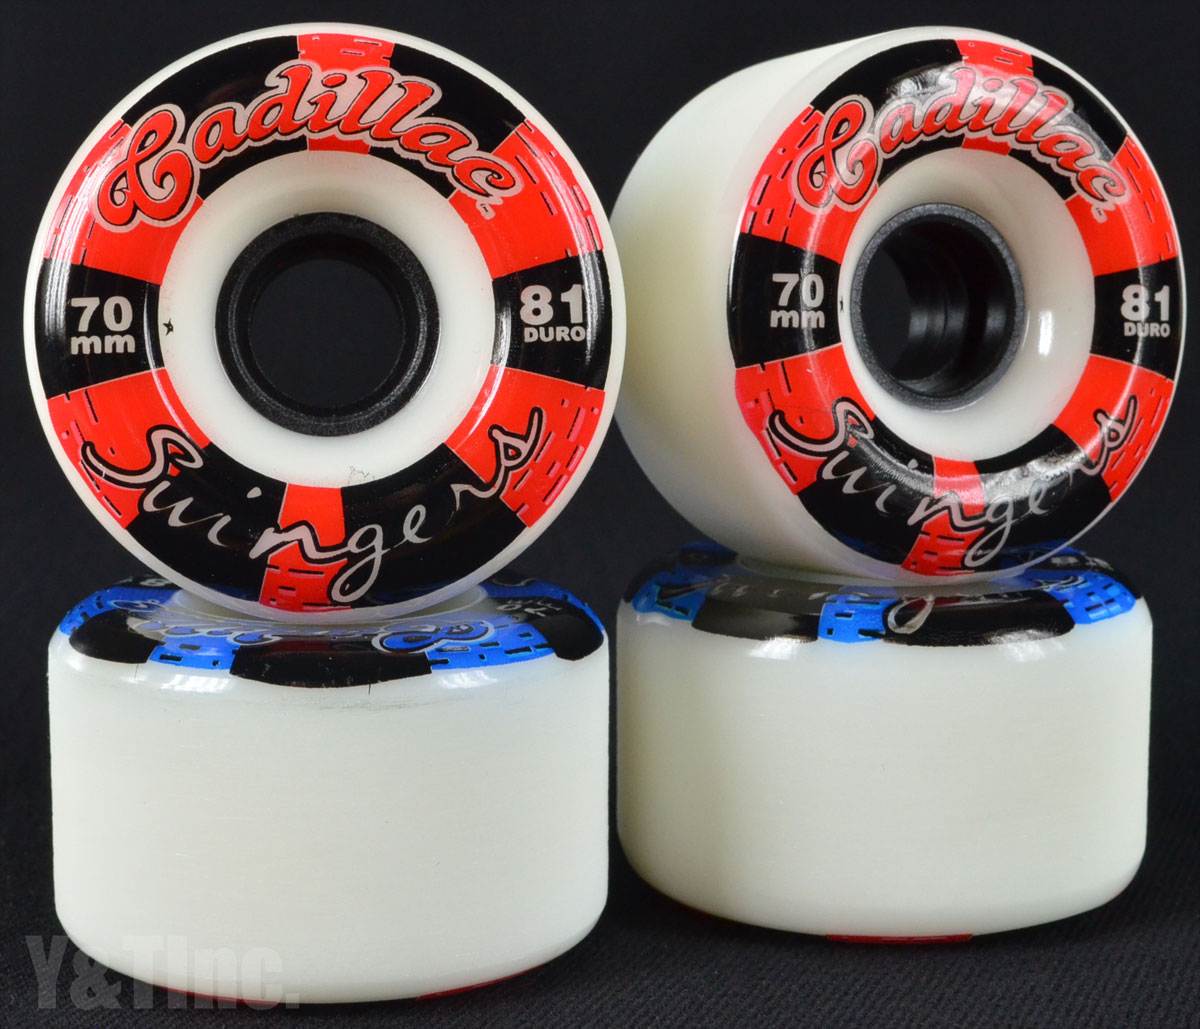 CADILLAC SWINGERS 70mm 81a White 1